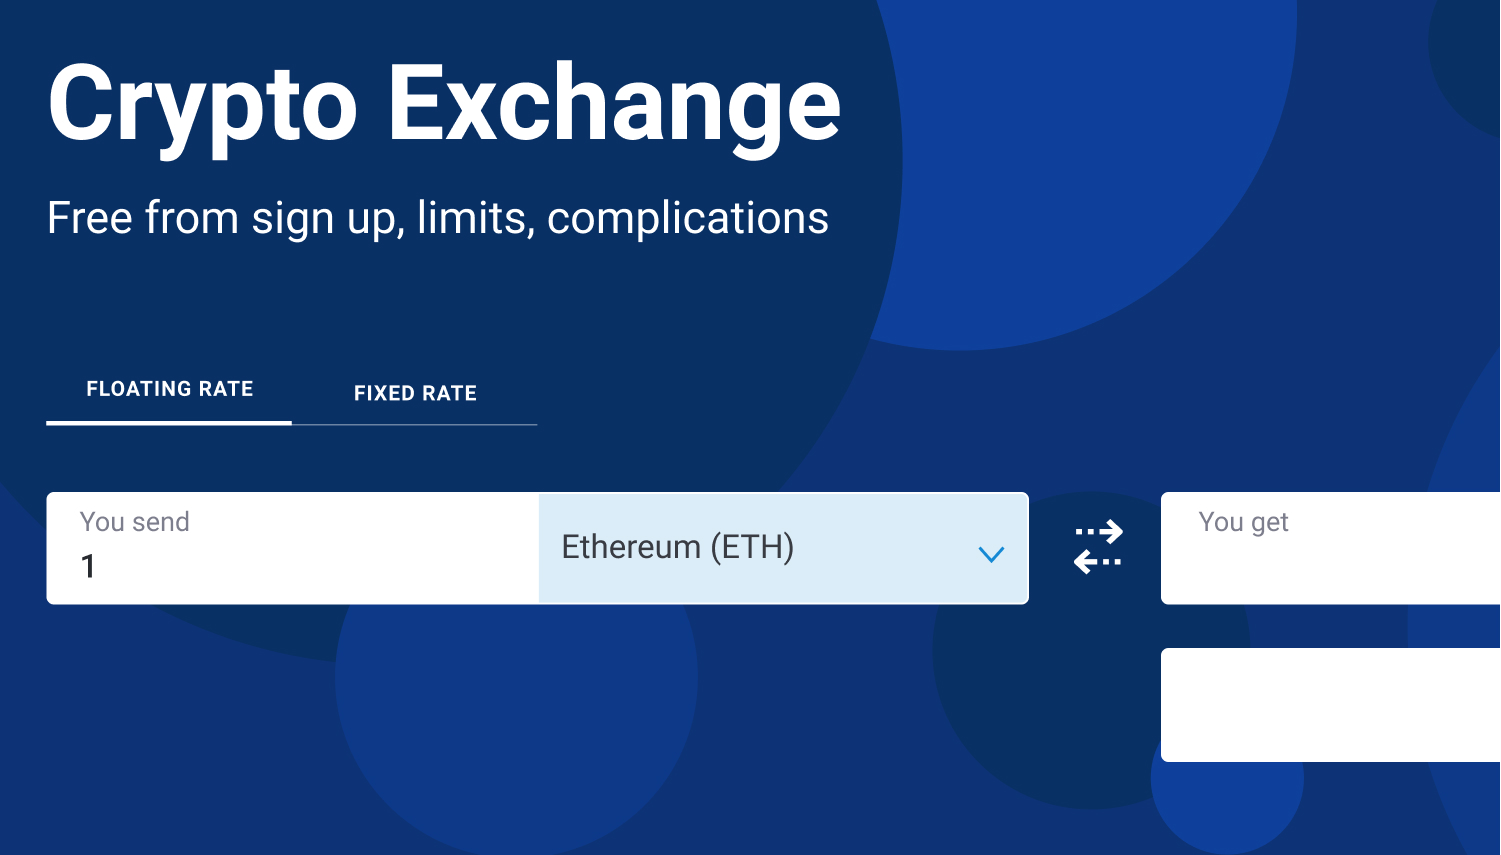 enter the amount of Ethereum to exchange